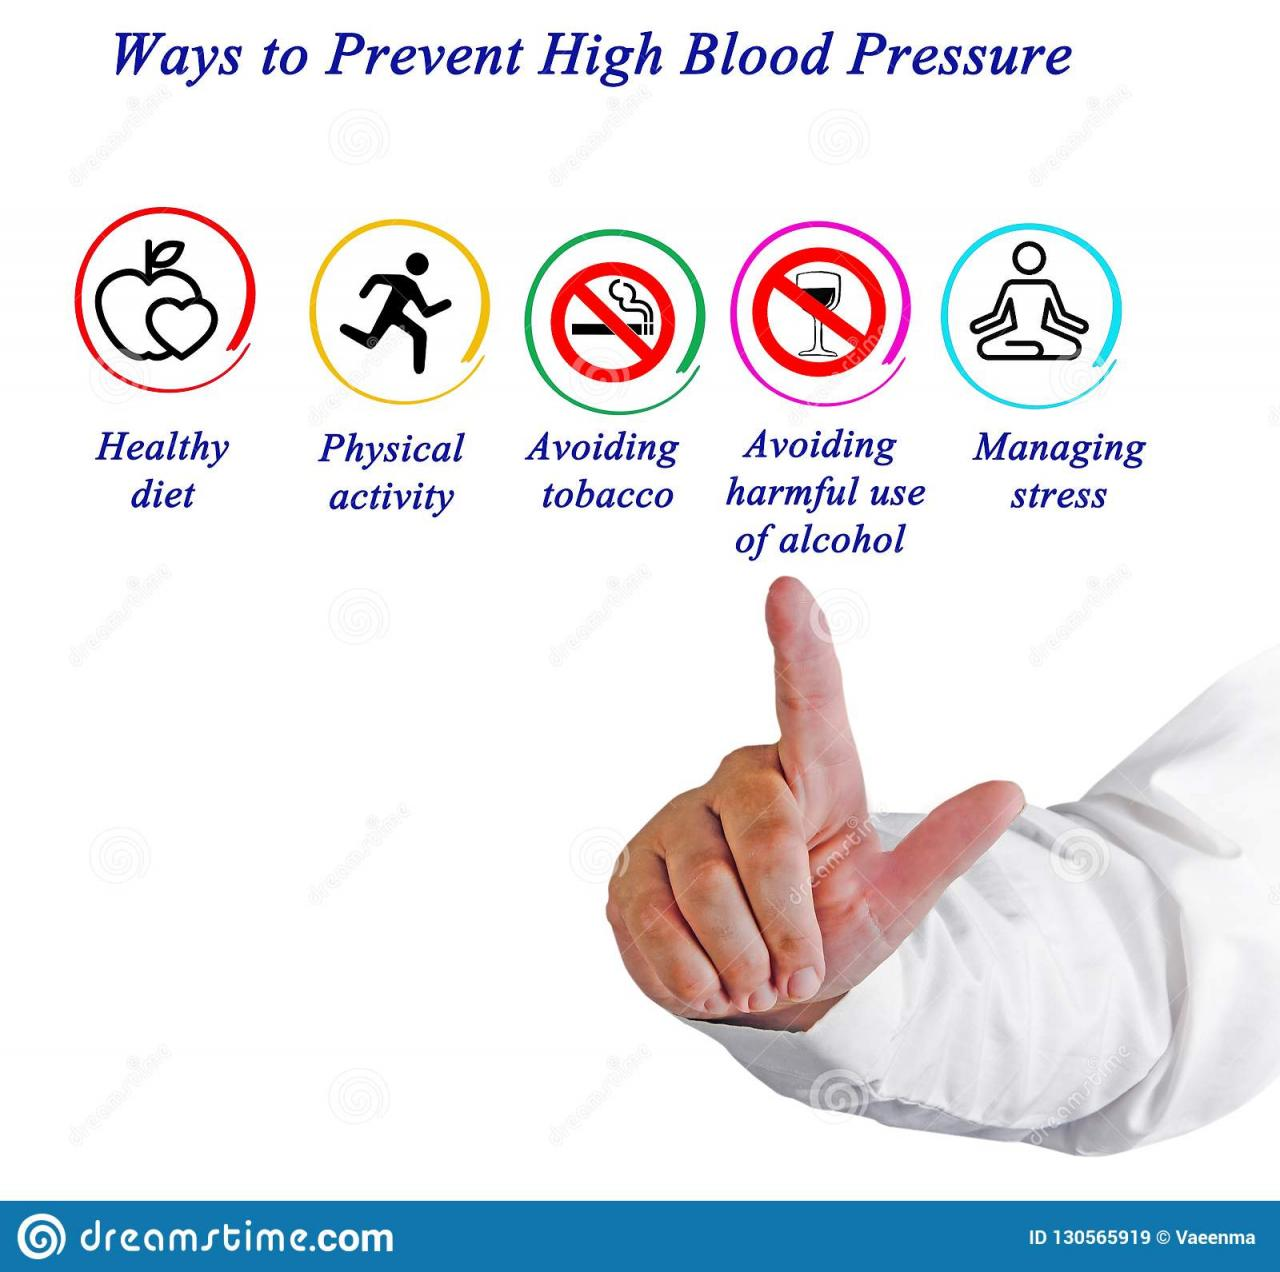 Prevent Hypertension or High Blood Pressure During the Holidays